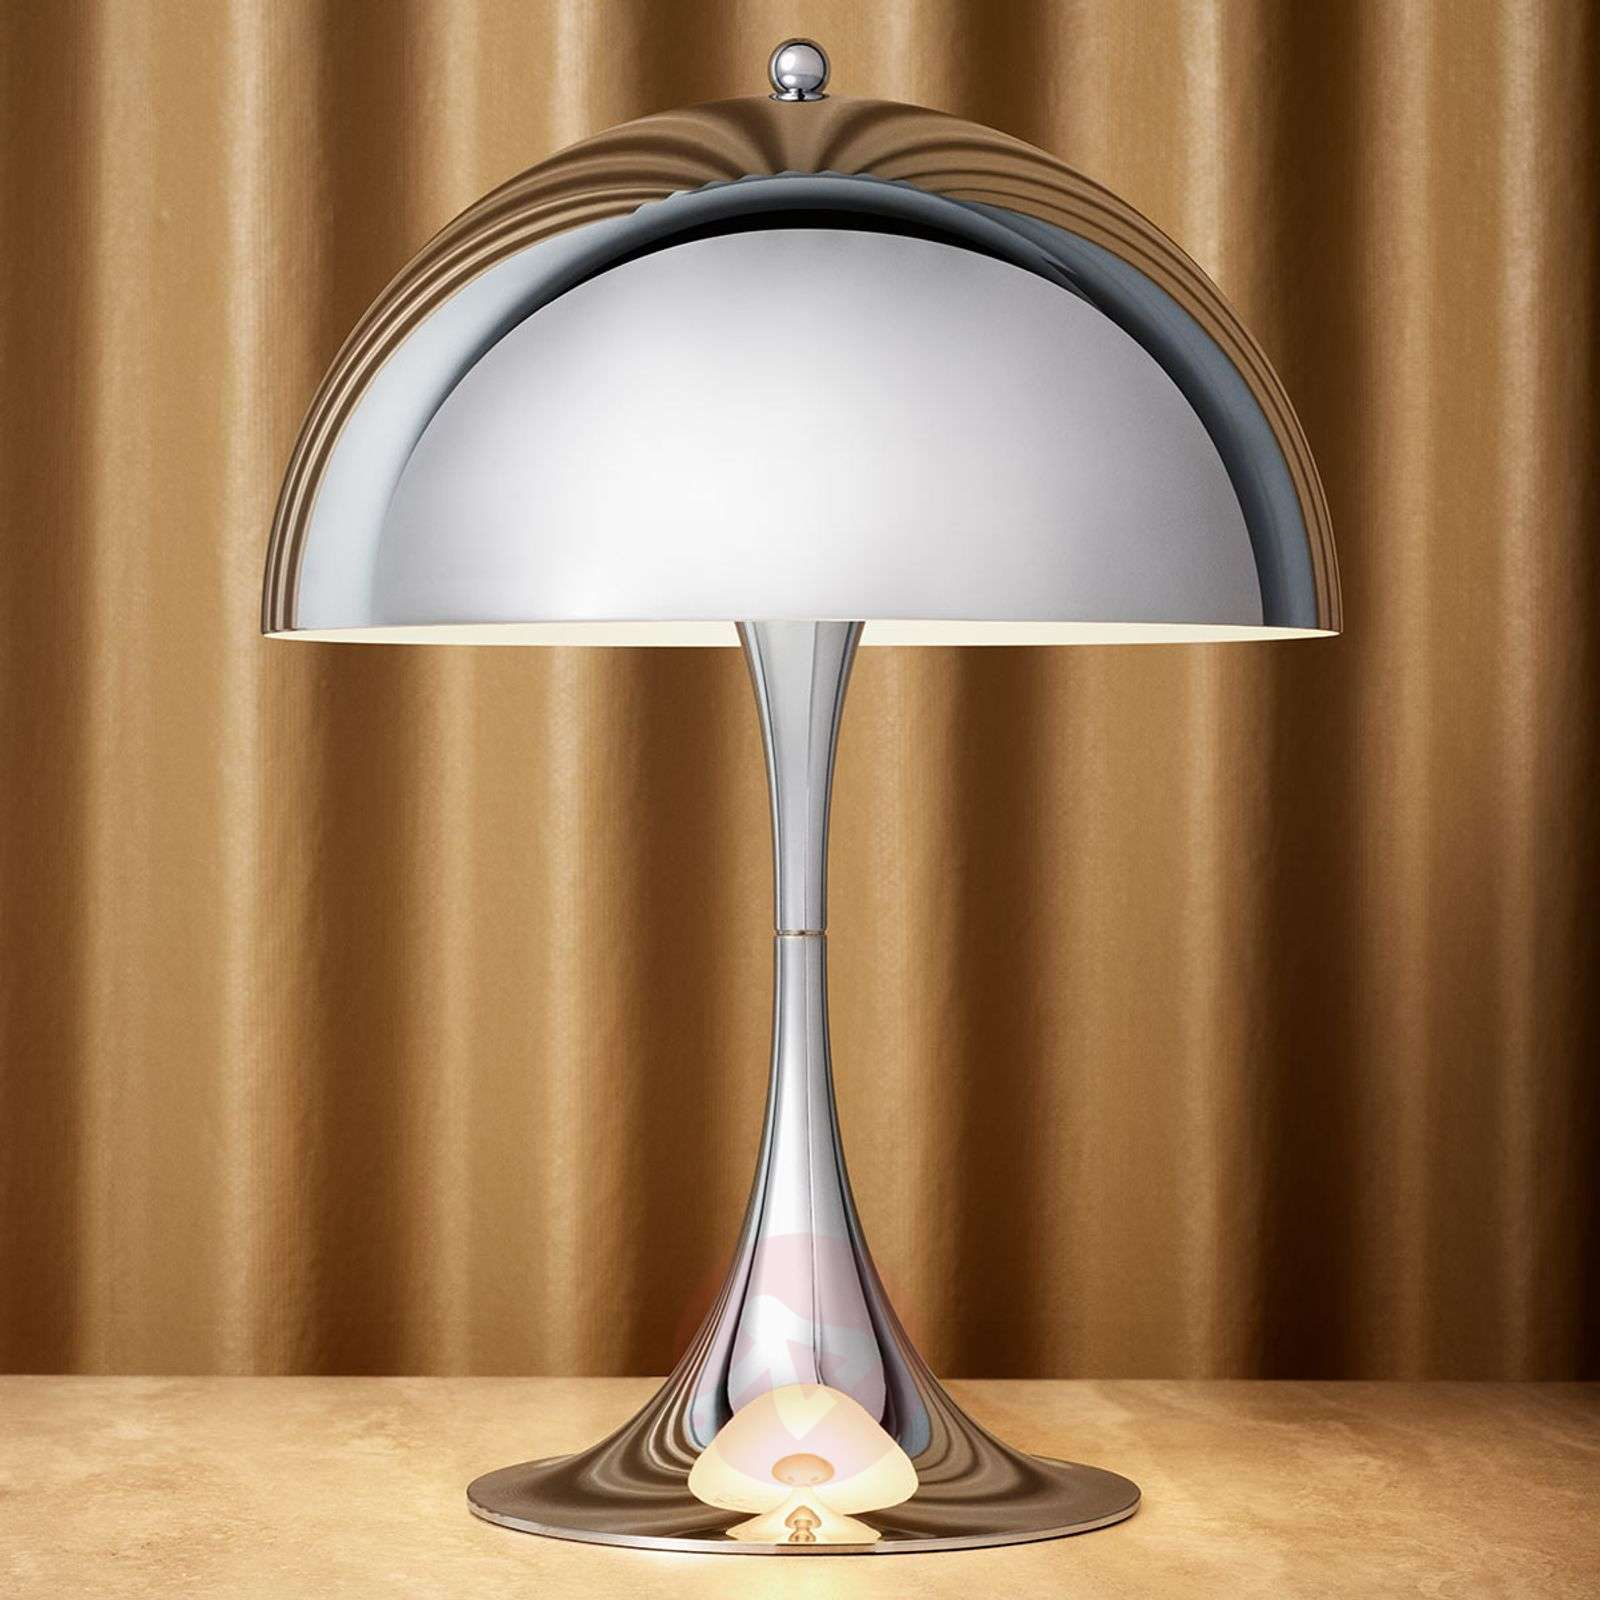 Louis Poulsen Panthella Mini LED table lamp chrome-6090151-01